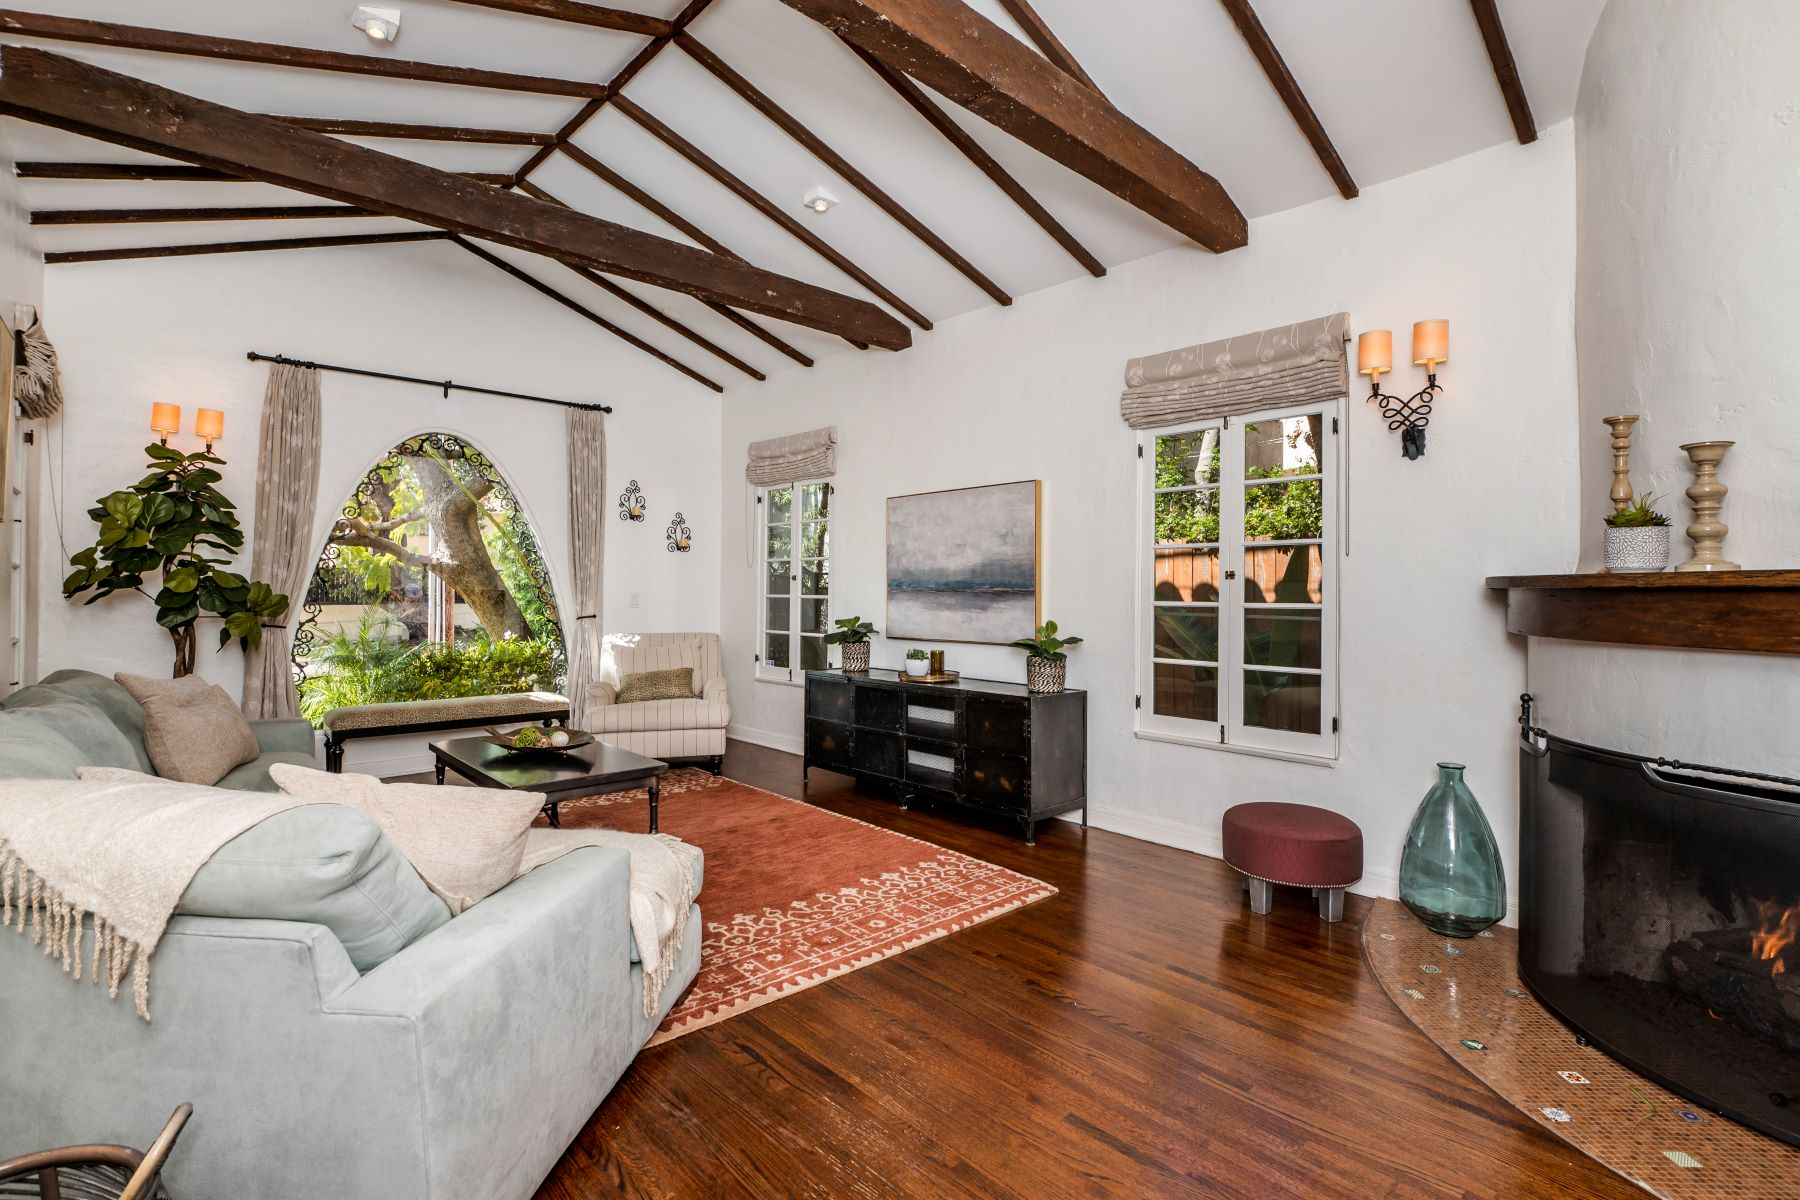 Single Family Homes for Active at 2112 Kerwood Avenue, Los Angeles, CA 90025 2112 Kerwood Avenue Los Angeles, California 90025 United States